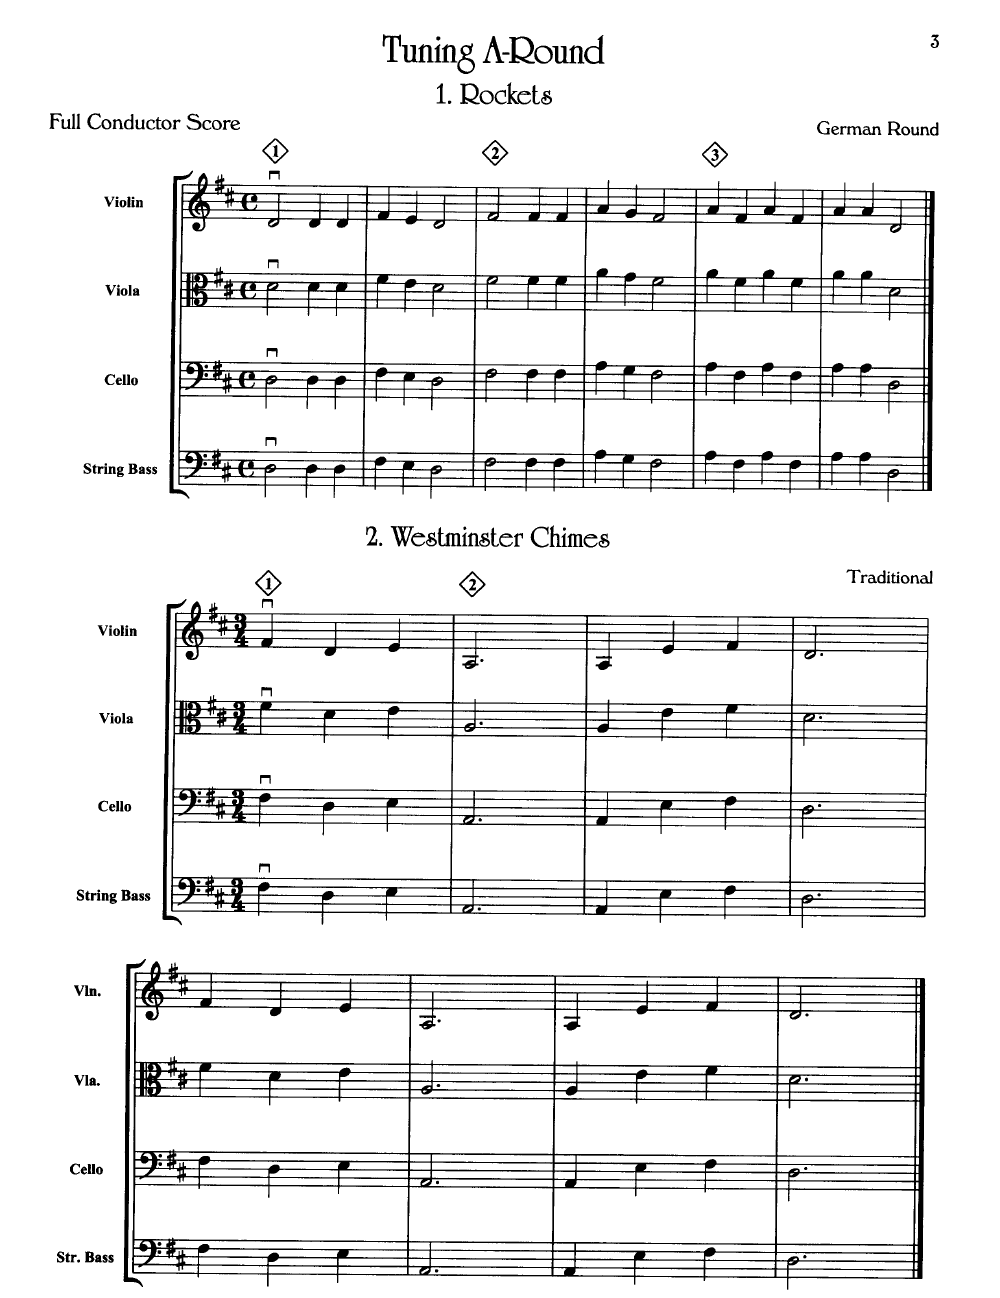 Tuning a Round by BELL, R J.W. Pepper Sheet Music